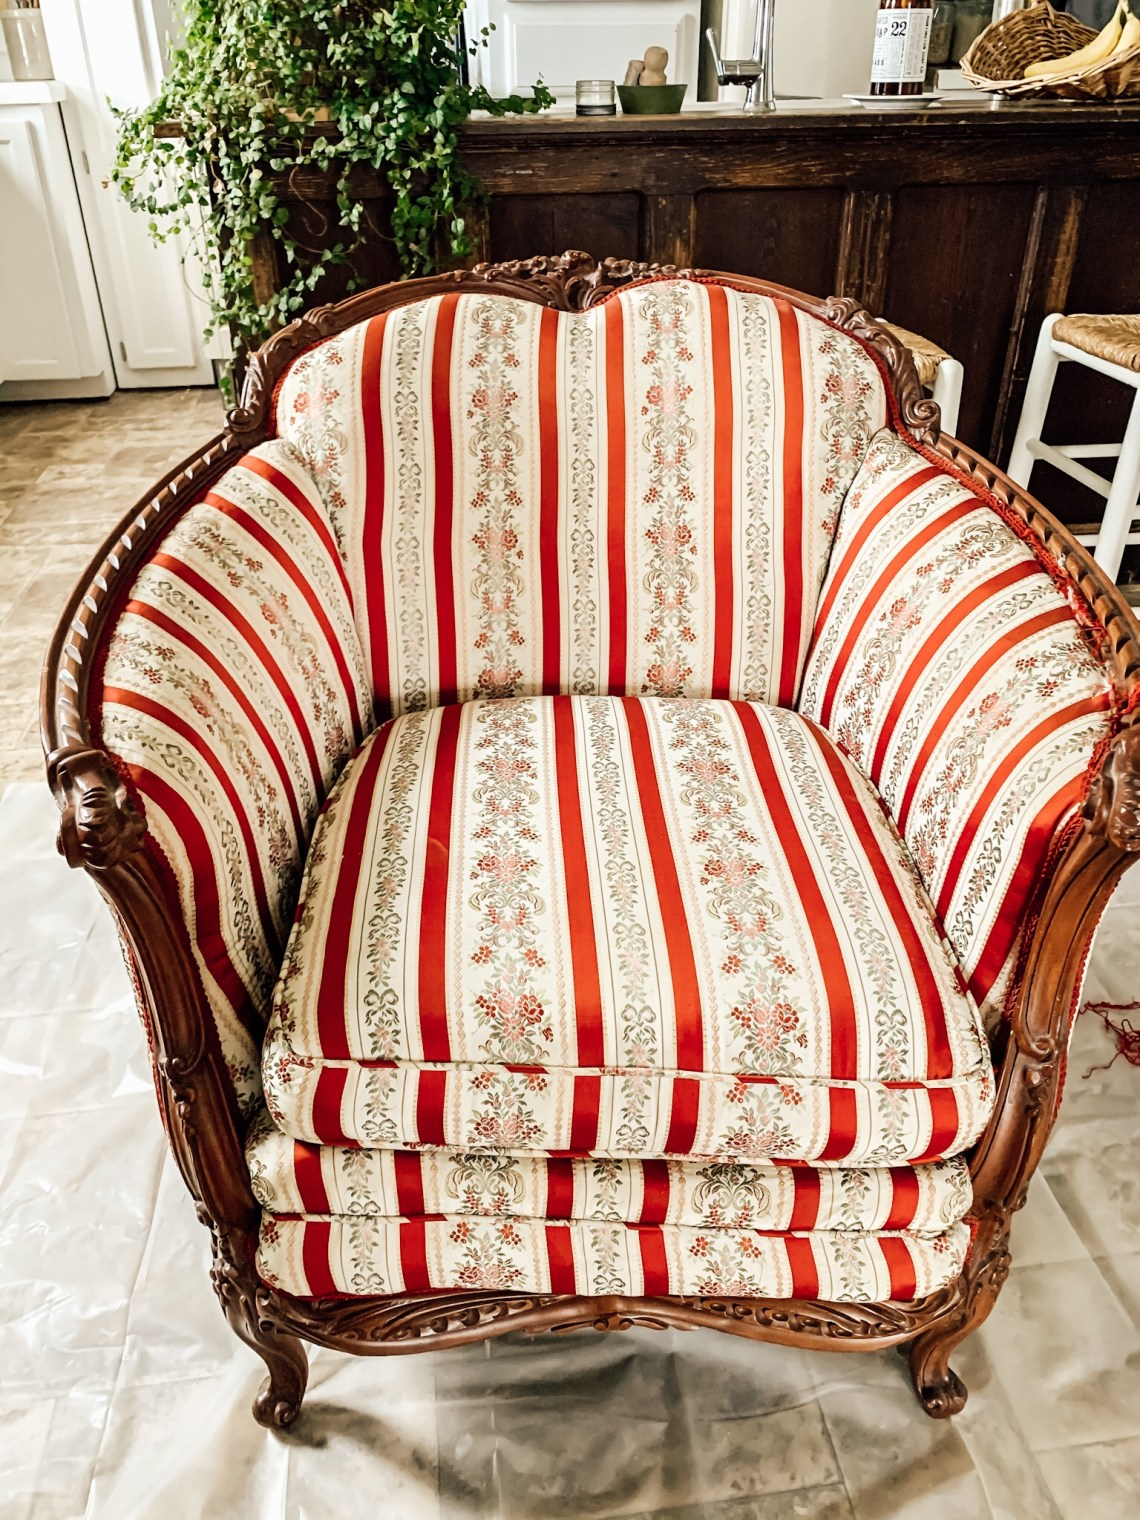 How to Deconstruct and Reupholster a Chair